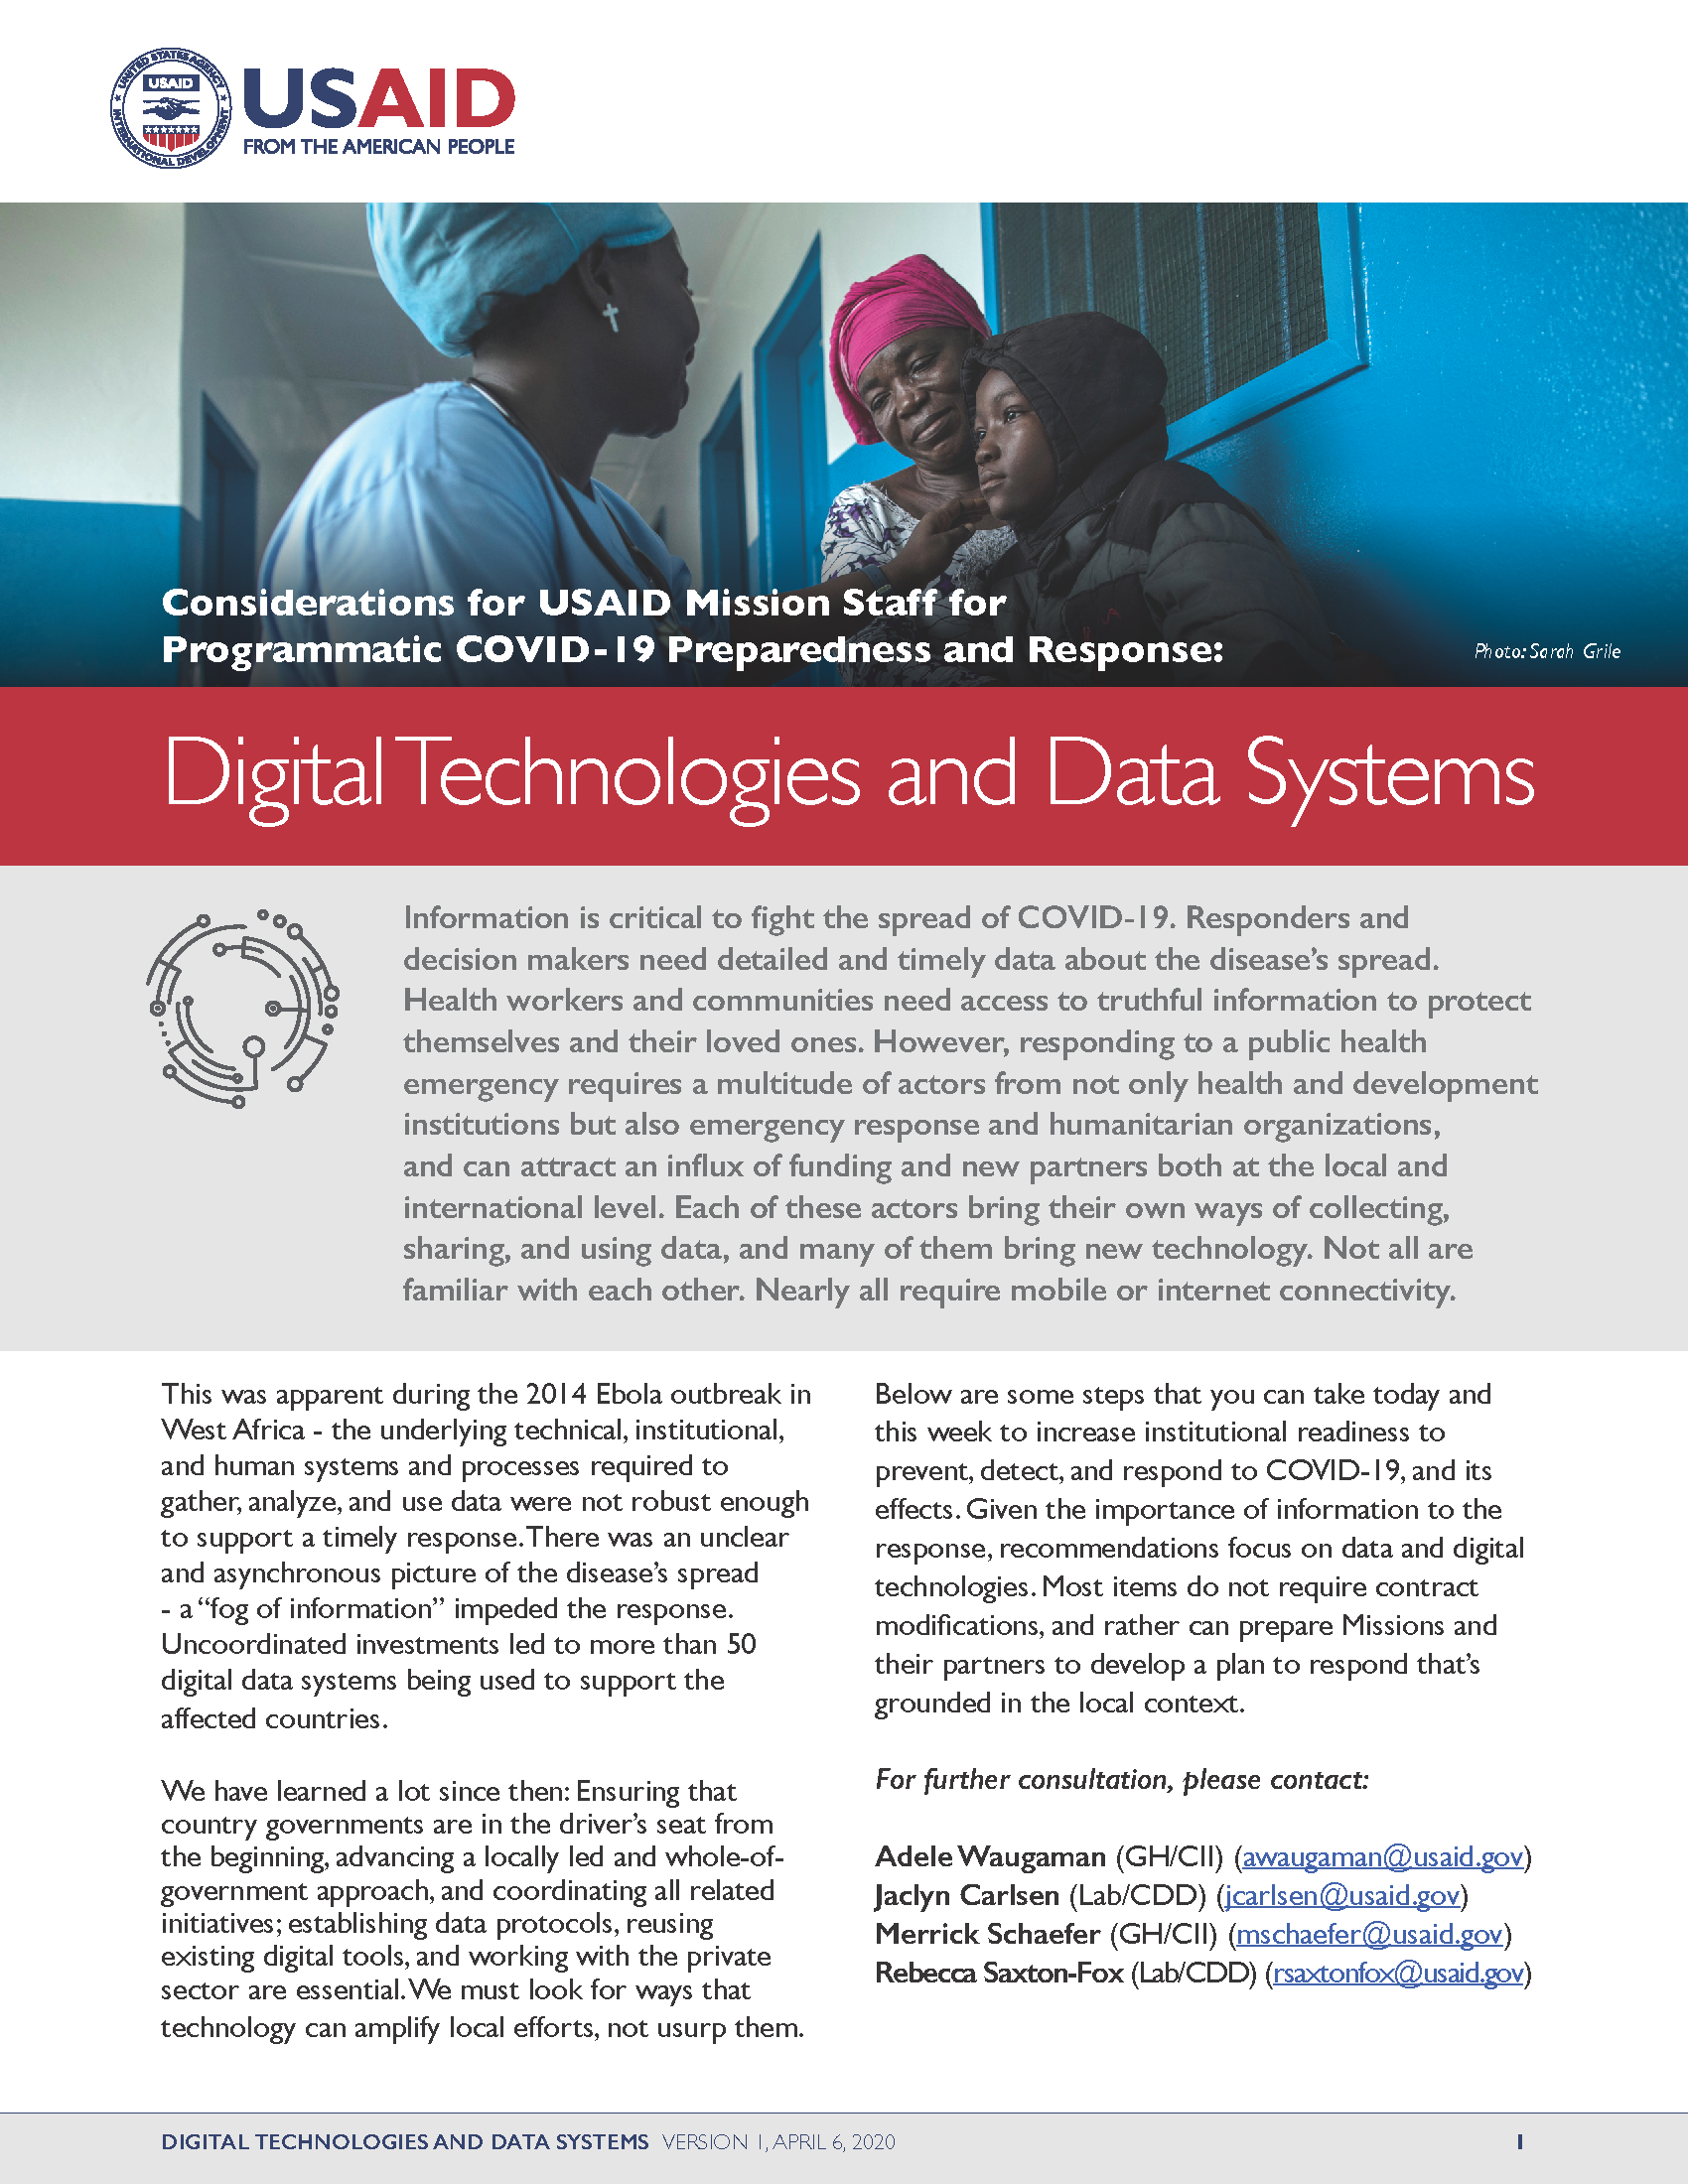 Digital Technologies and Data Systems